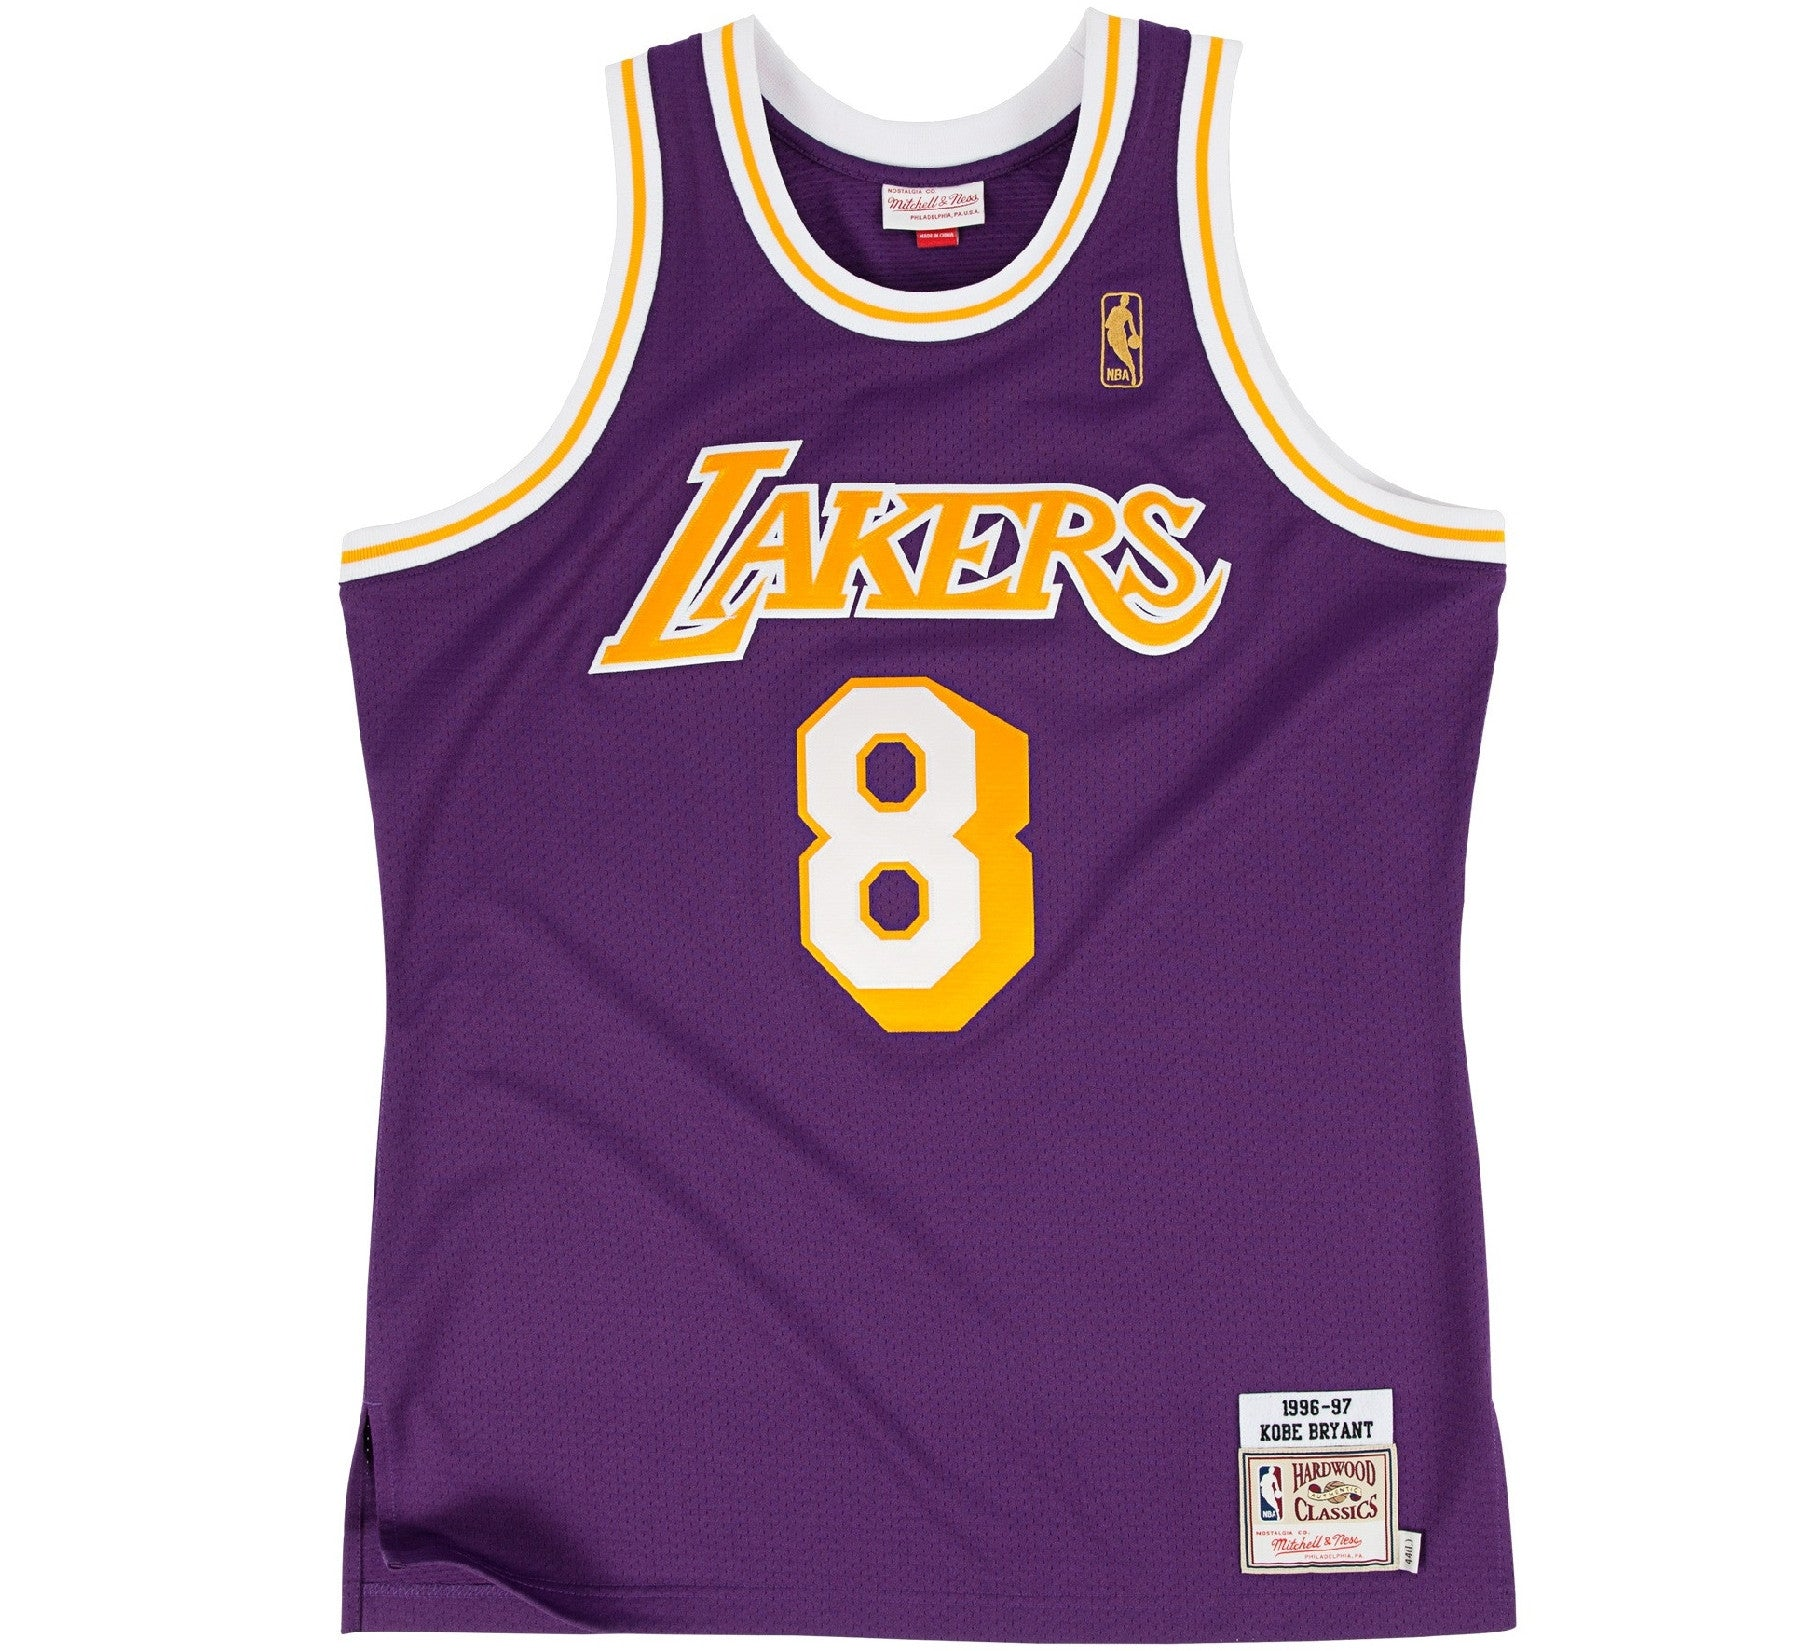 Kobe Bryant Lakers Sewn Jersey - And Still